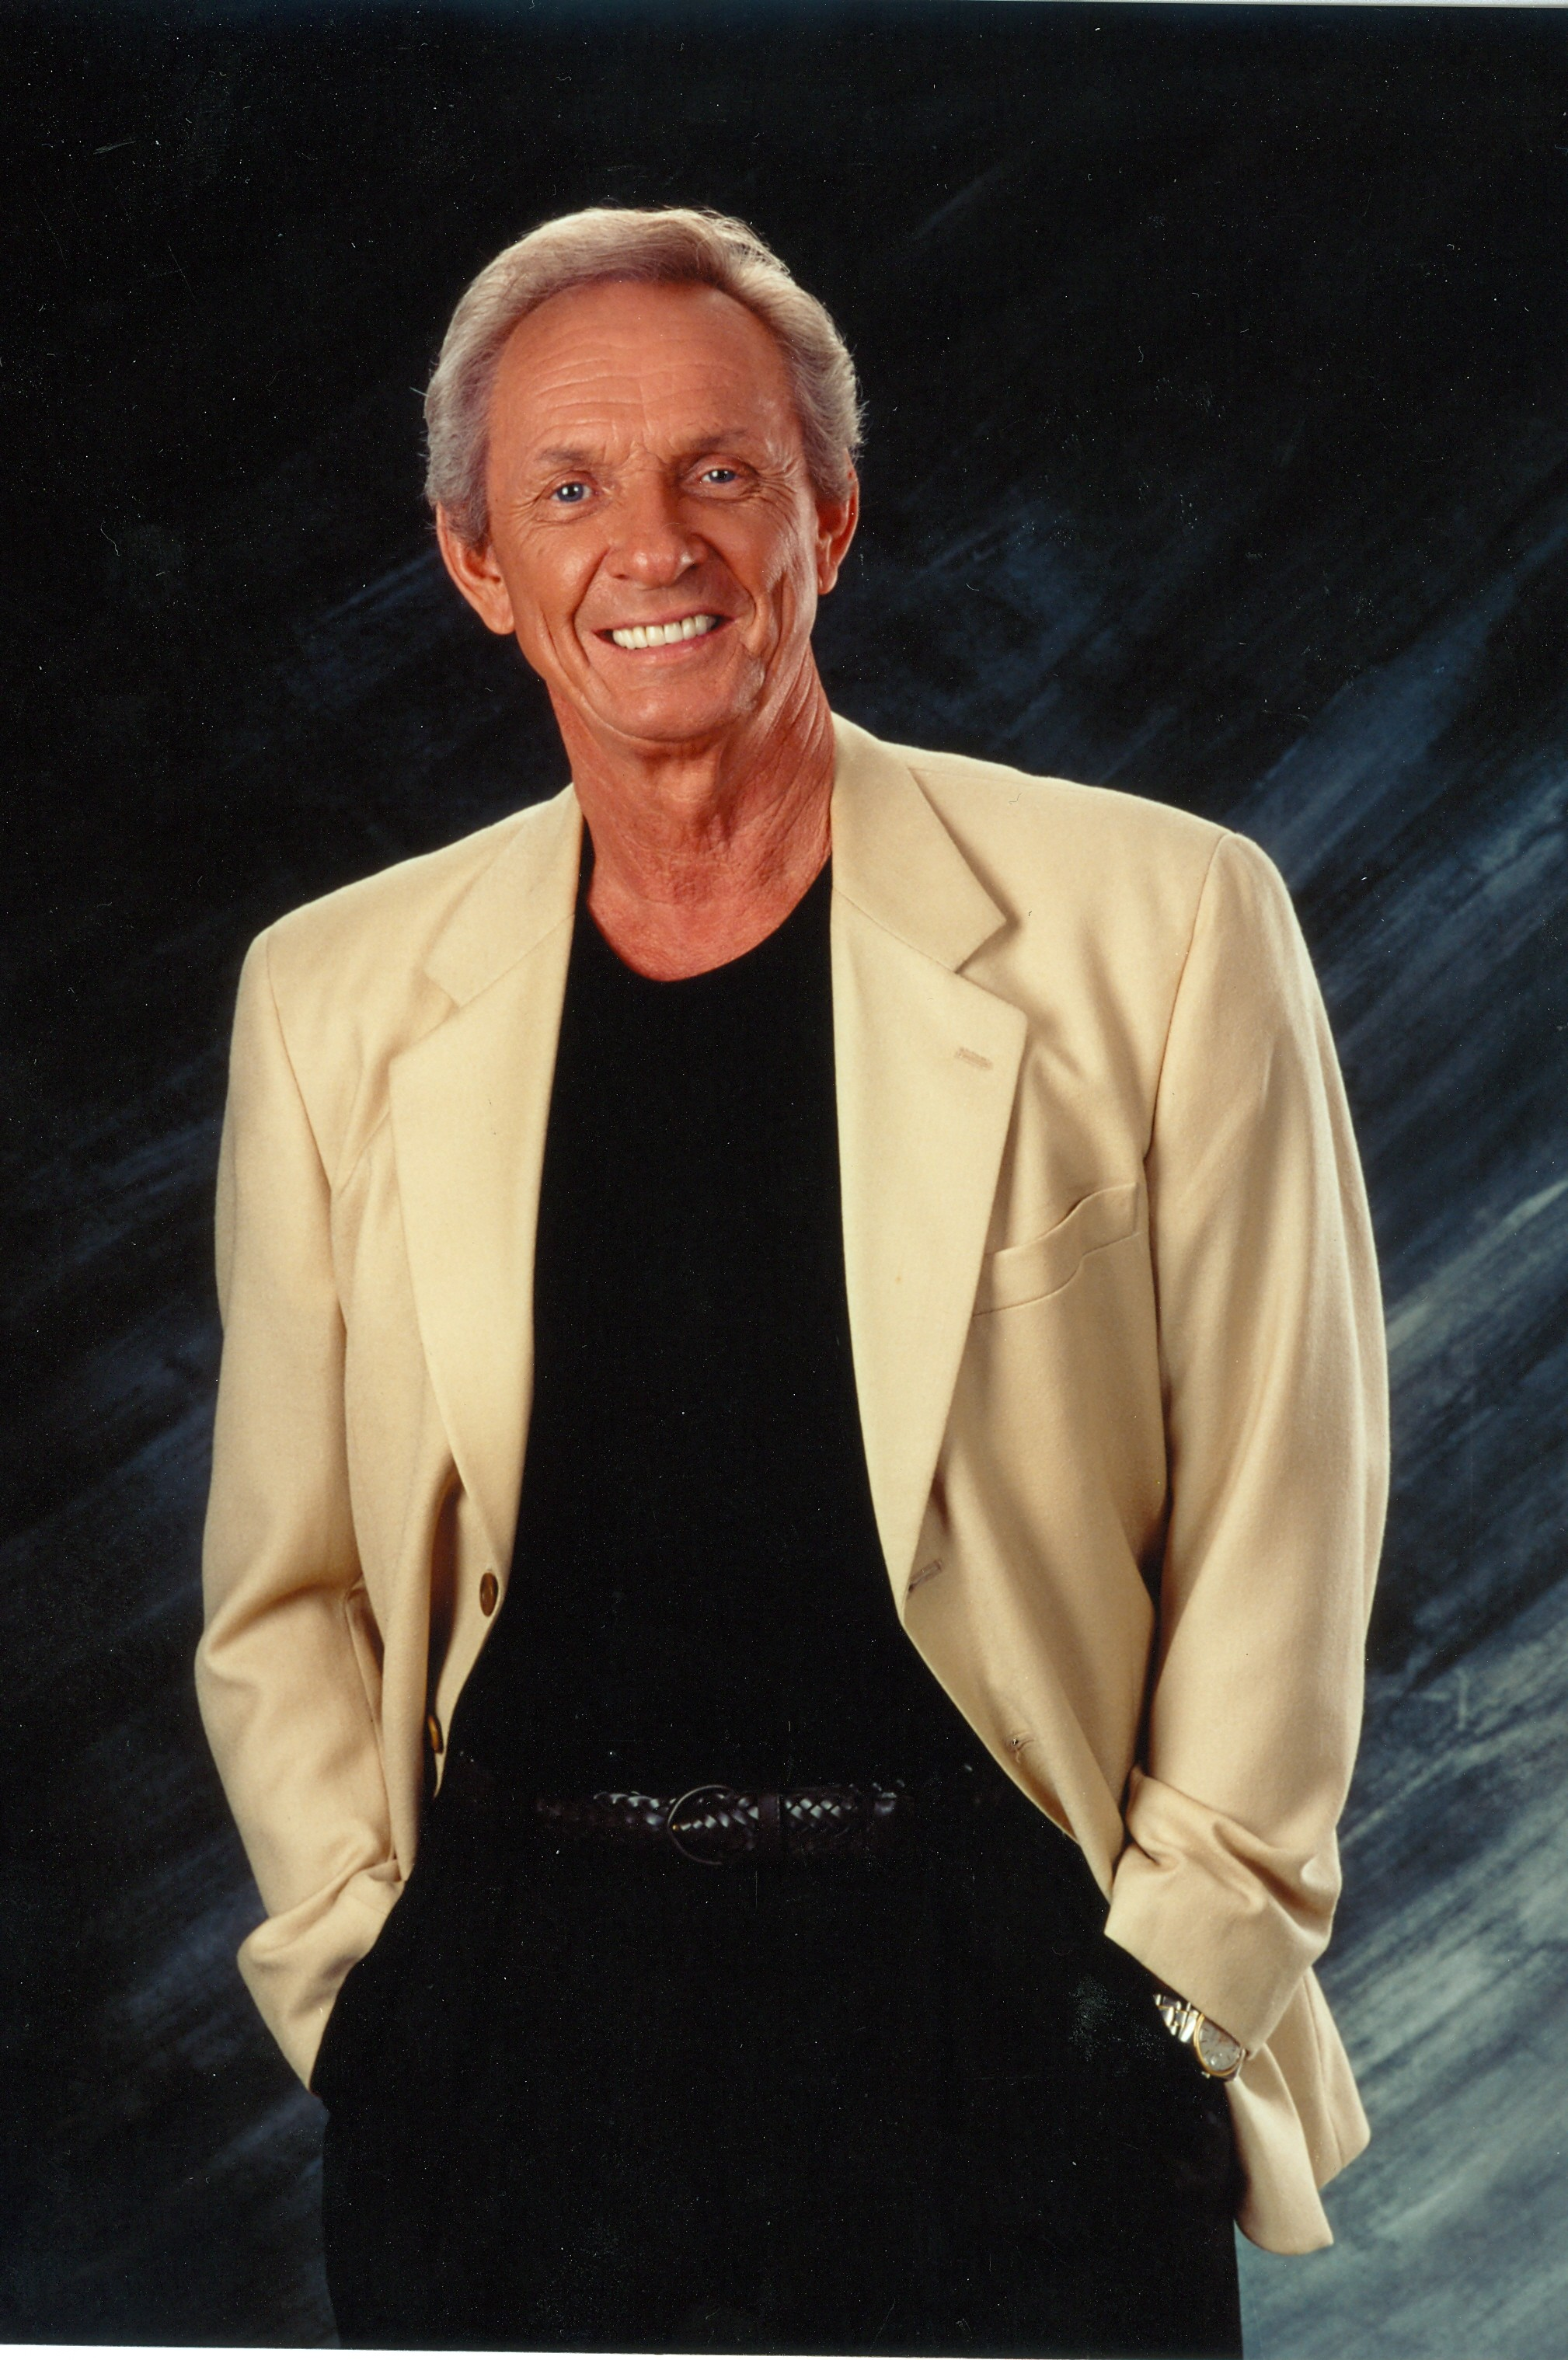 Pam Tillis and fellow artists react to the passing of her Dad, Mel Tillis